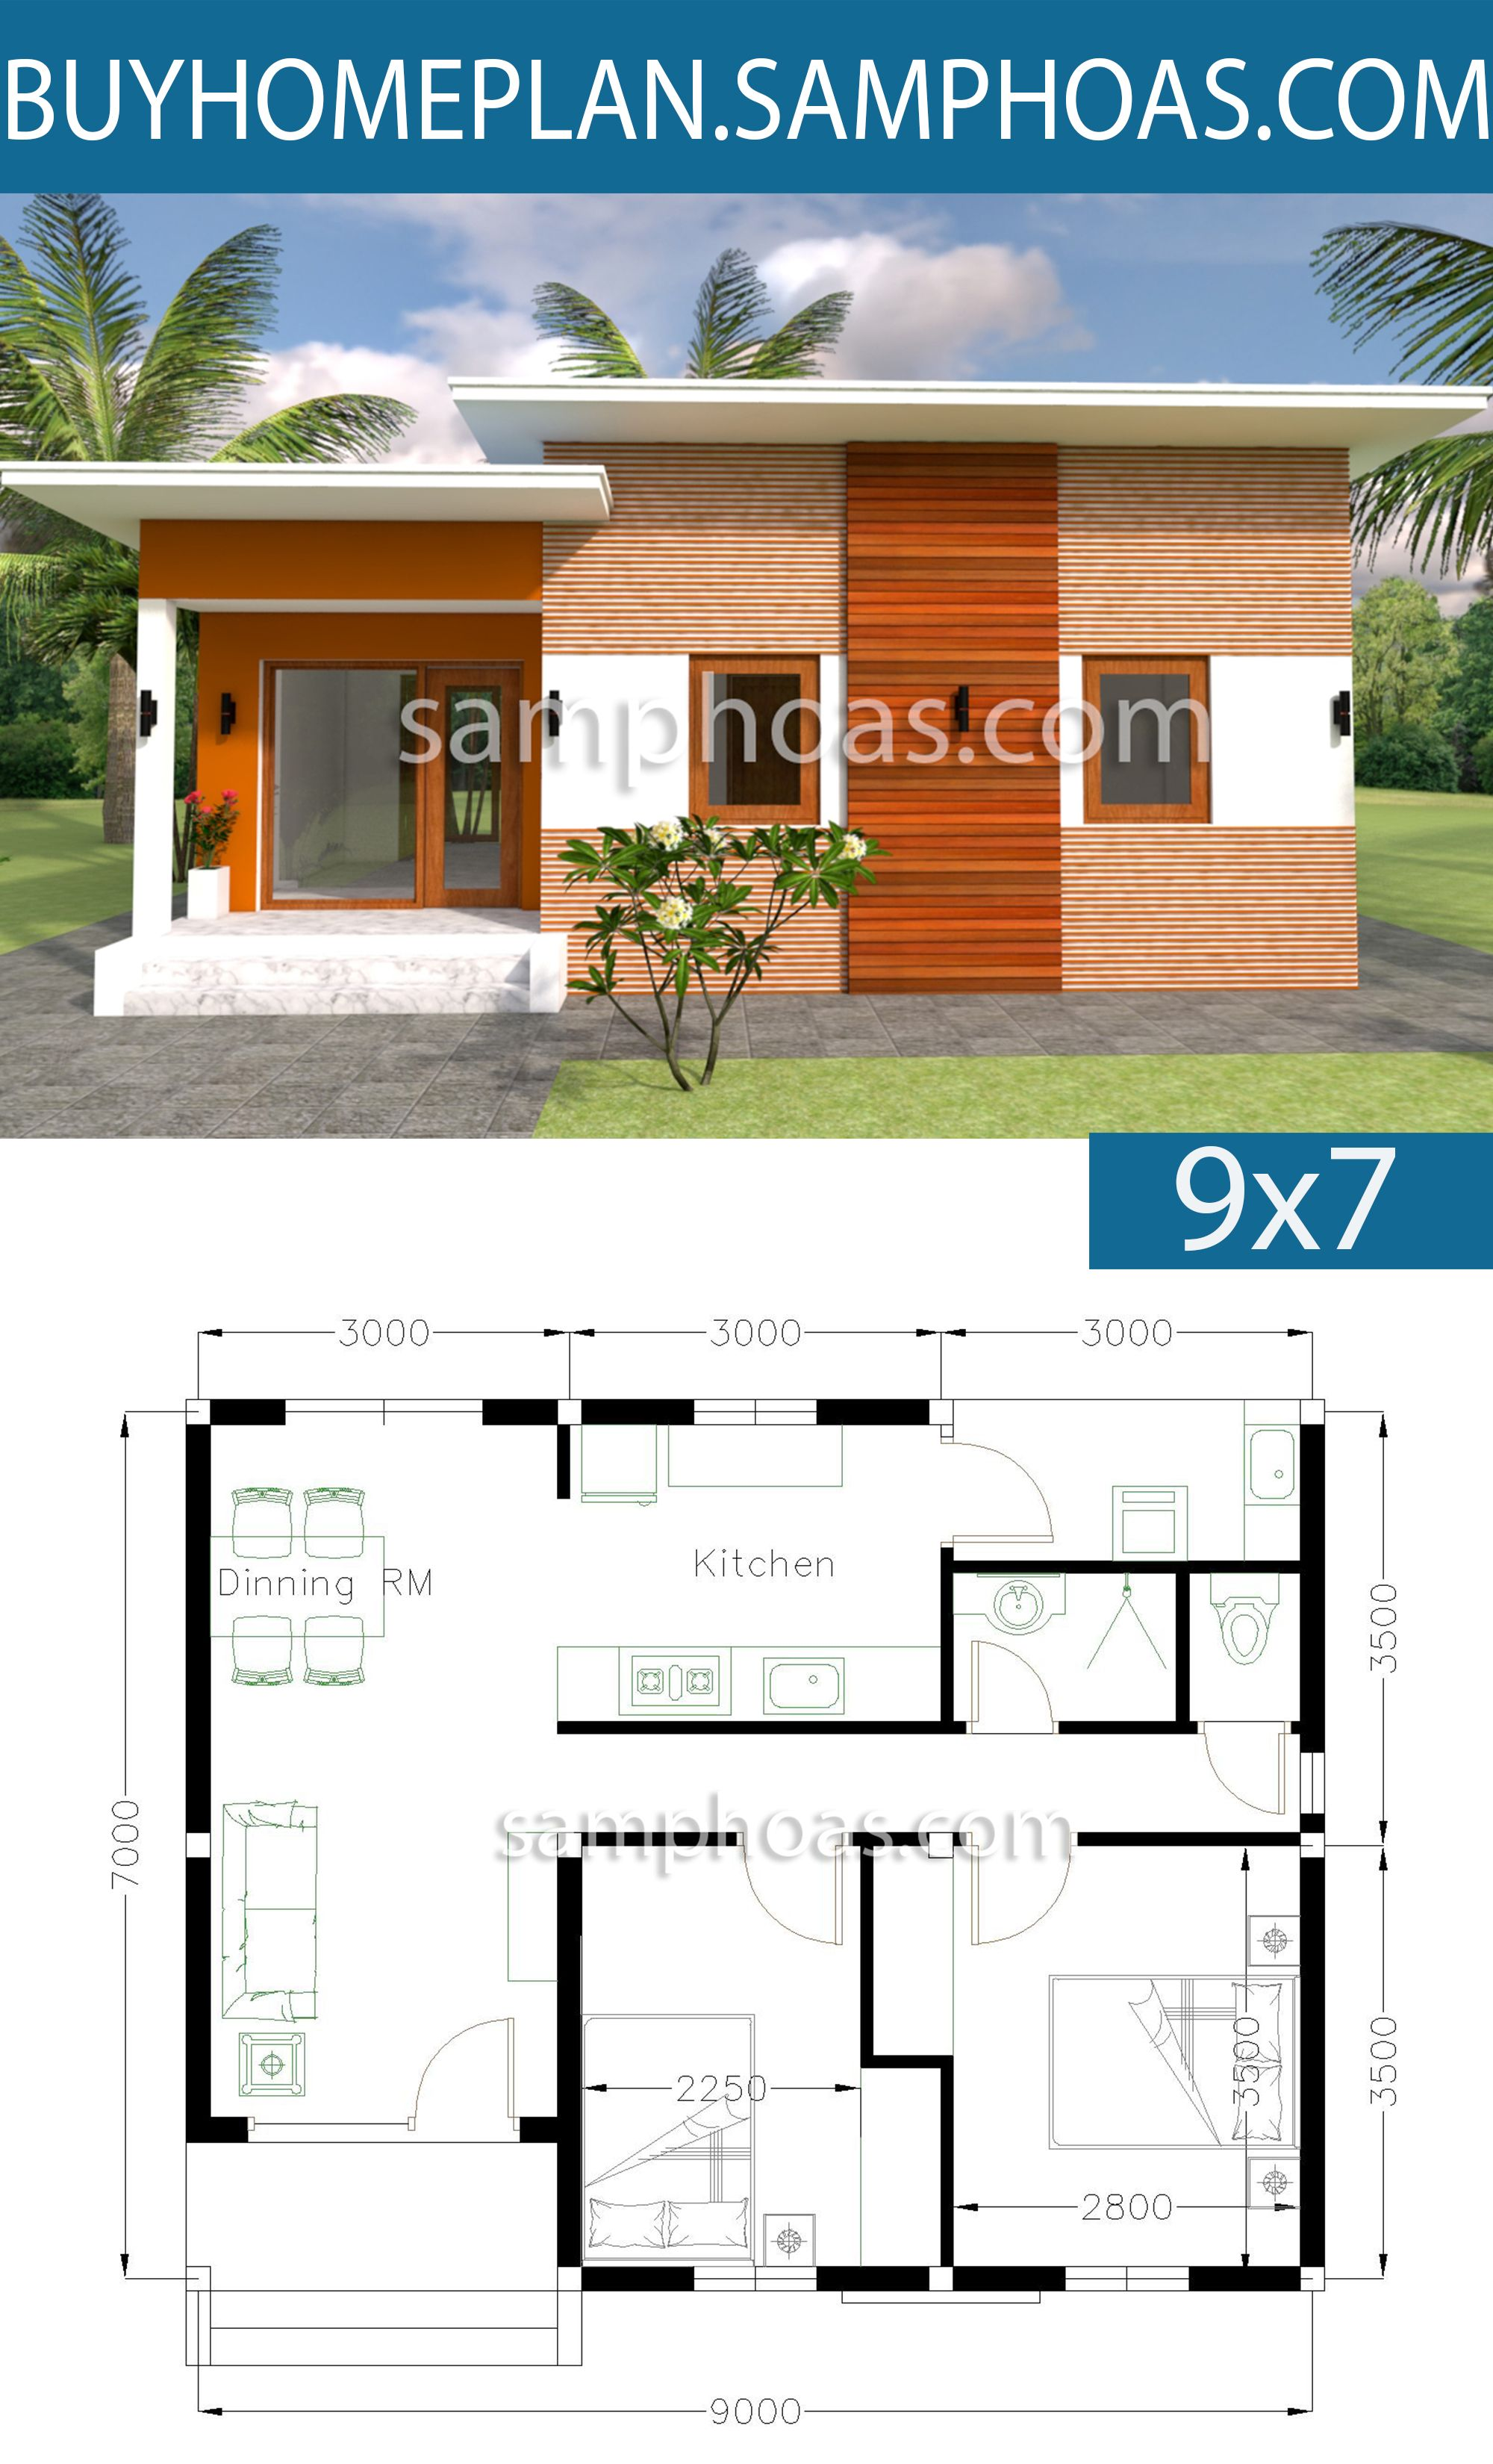 House Plans 9x7m With 2 Bedrooms House Plans Free Downloads Architectural Design House Plans Small Modern House Plans Small House Design Plans